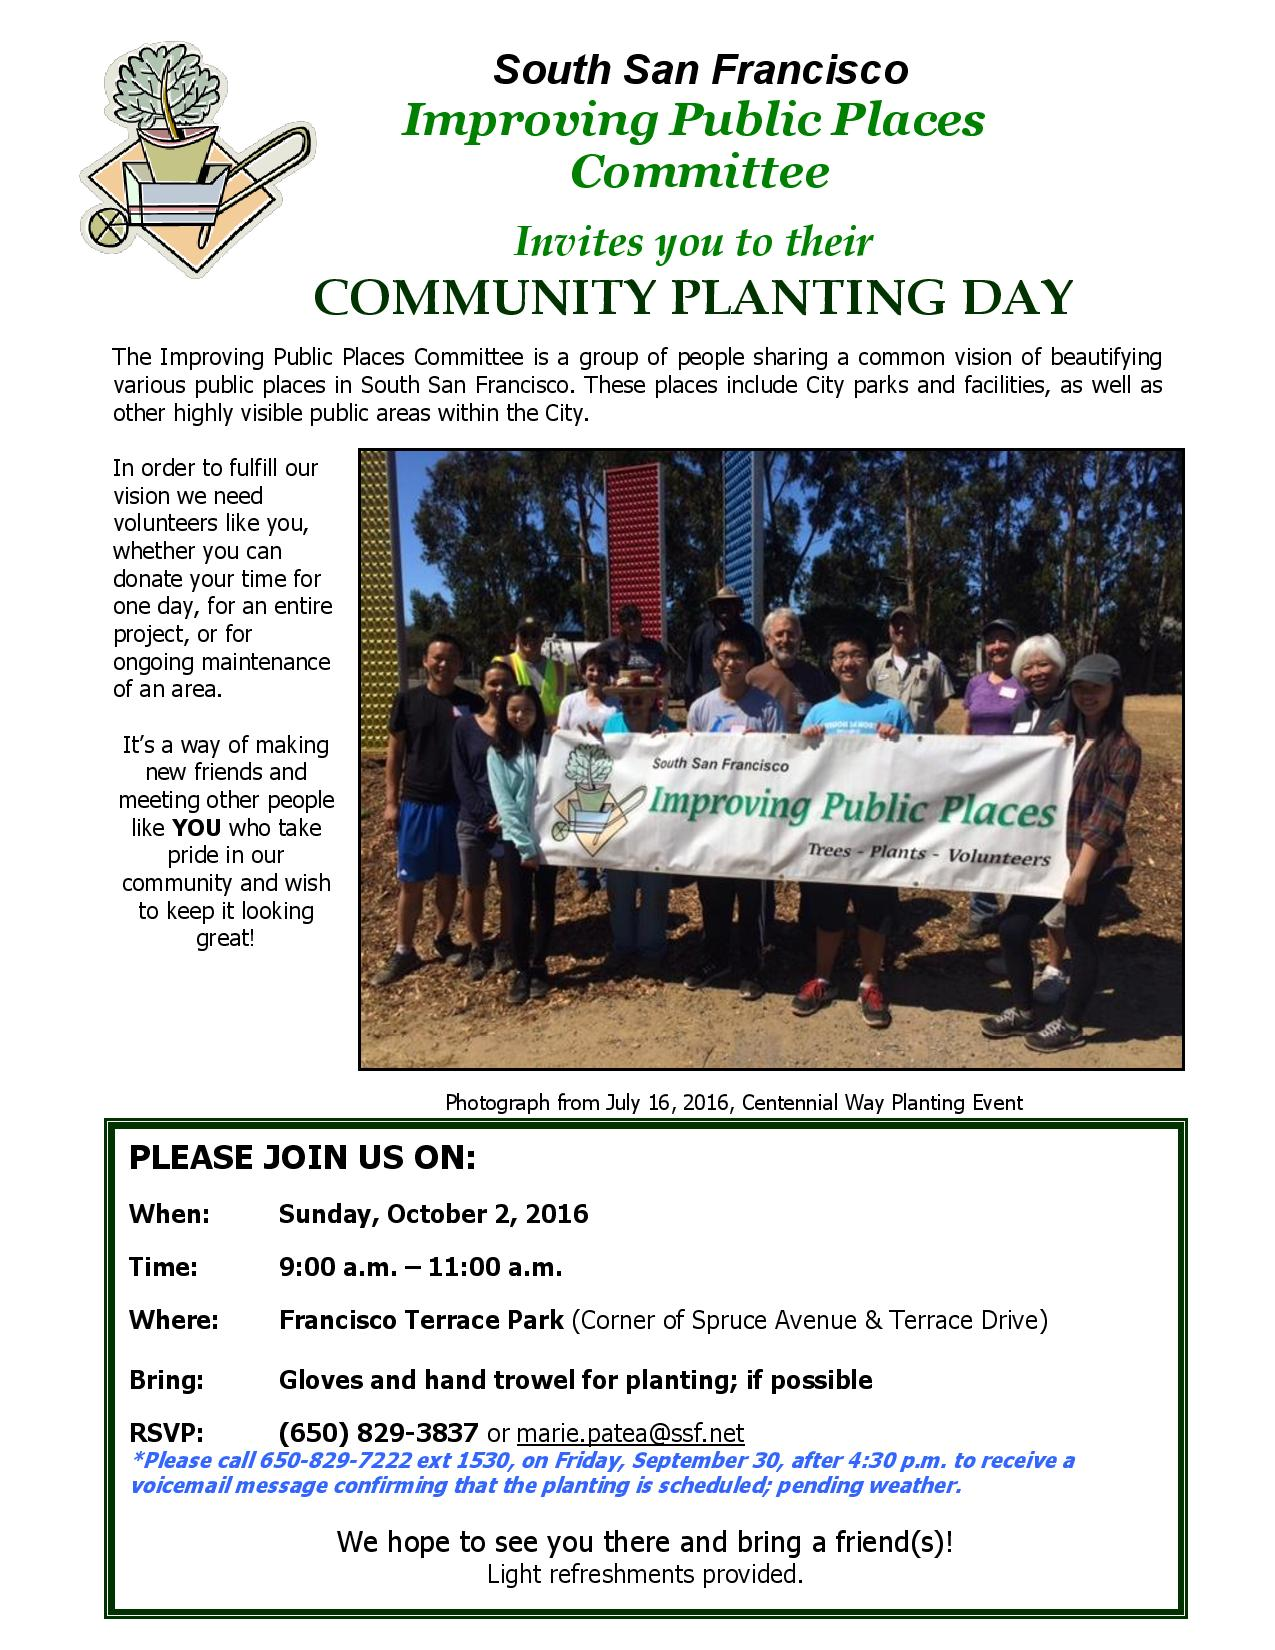 community-planting-10-2-16-page-001